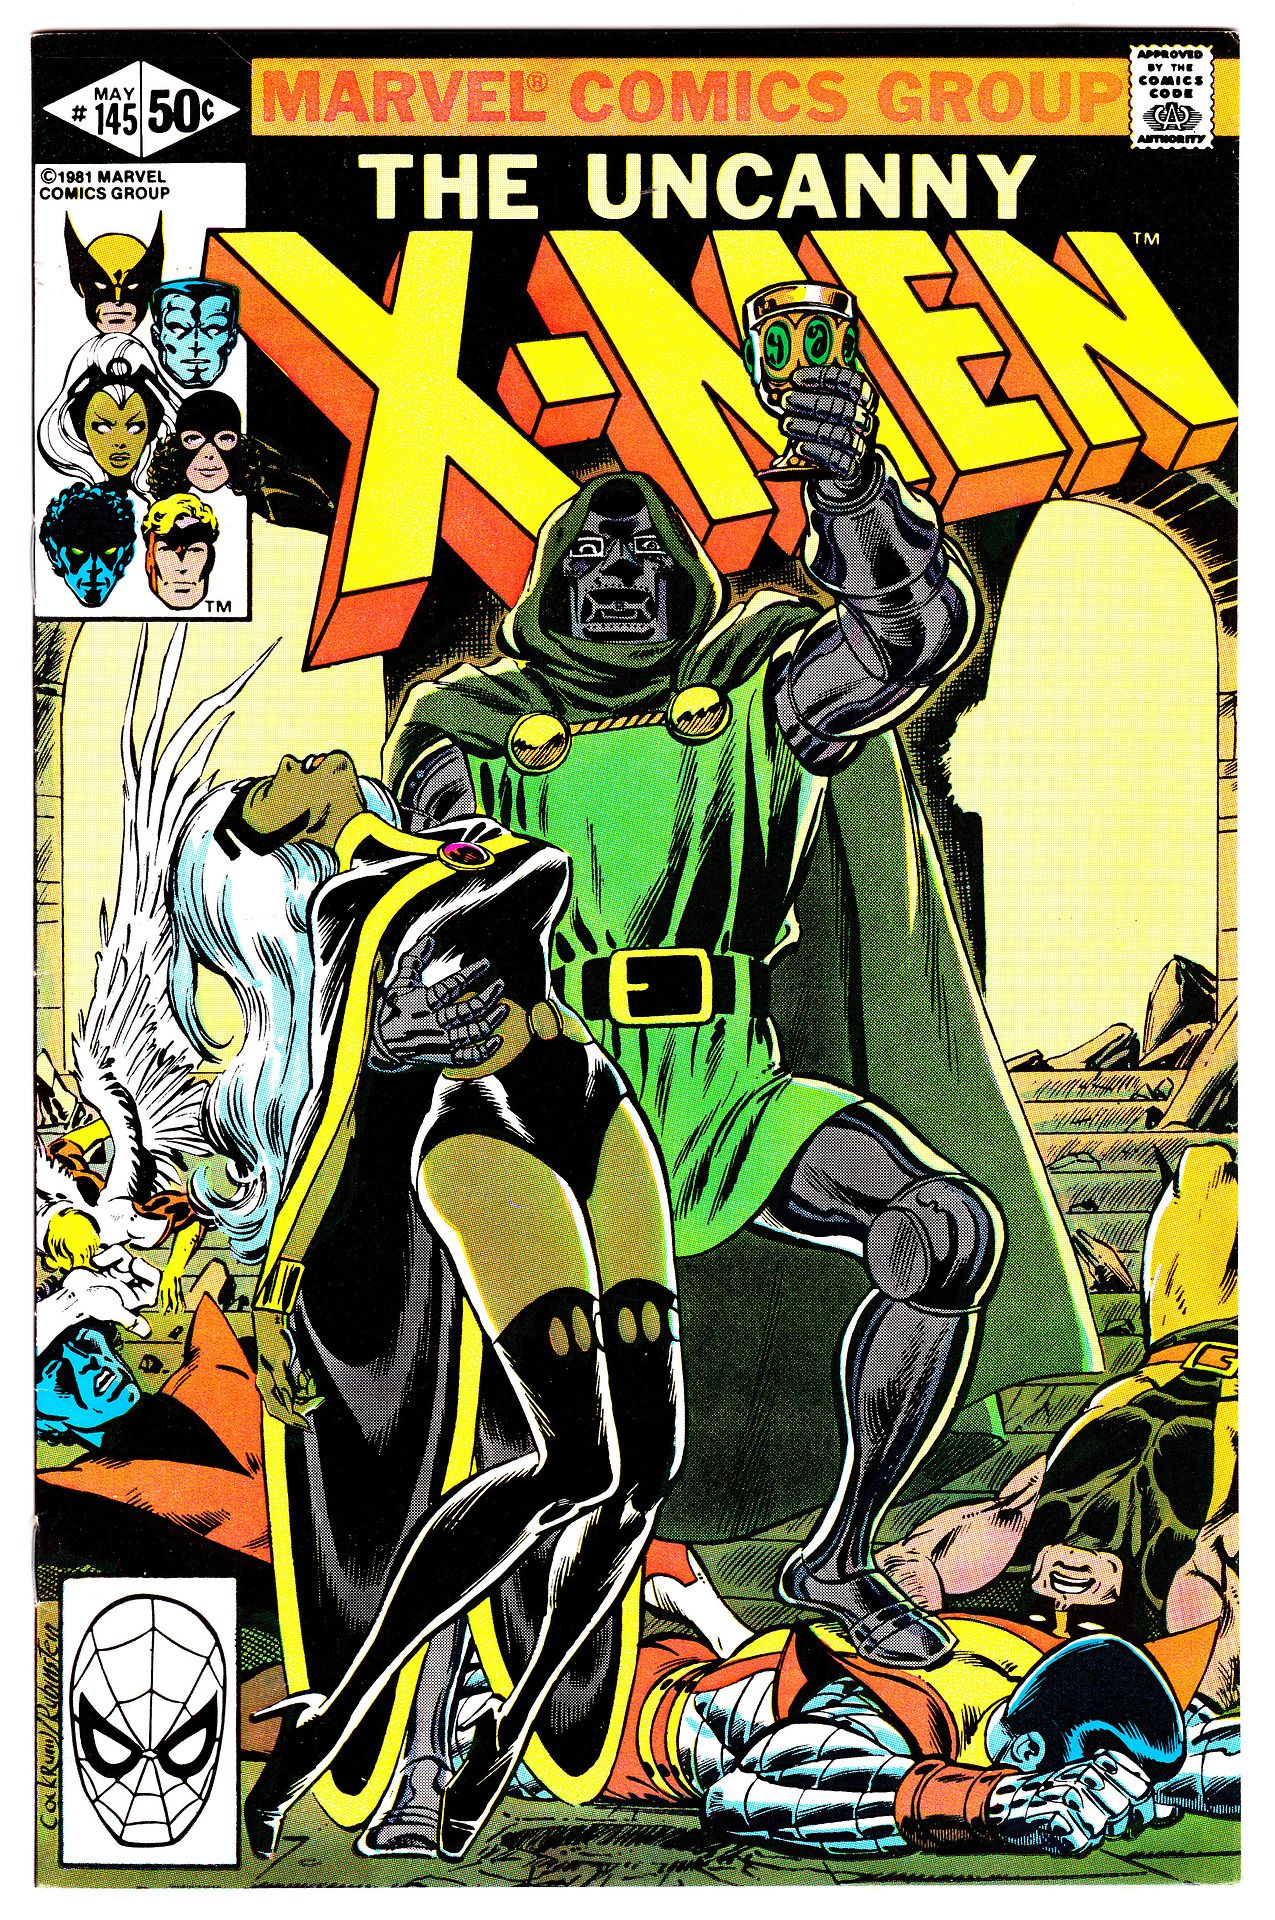 """vaultofcomics: """" UNCANNY X-MEN #145 (May 1981) Cover Art by Dave Cockrum """""""